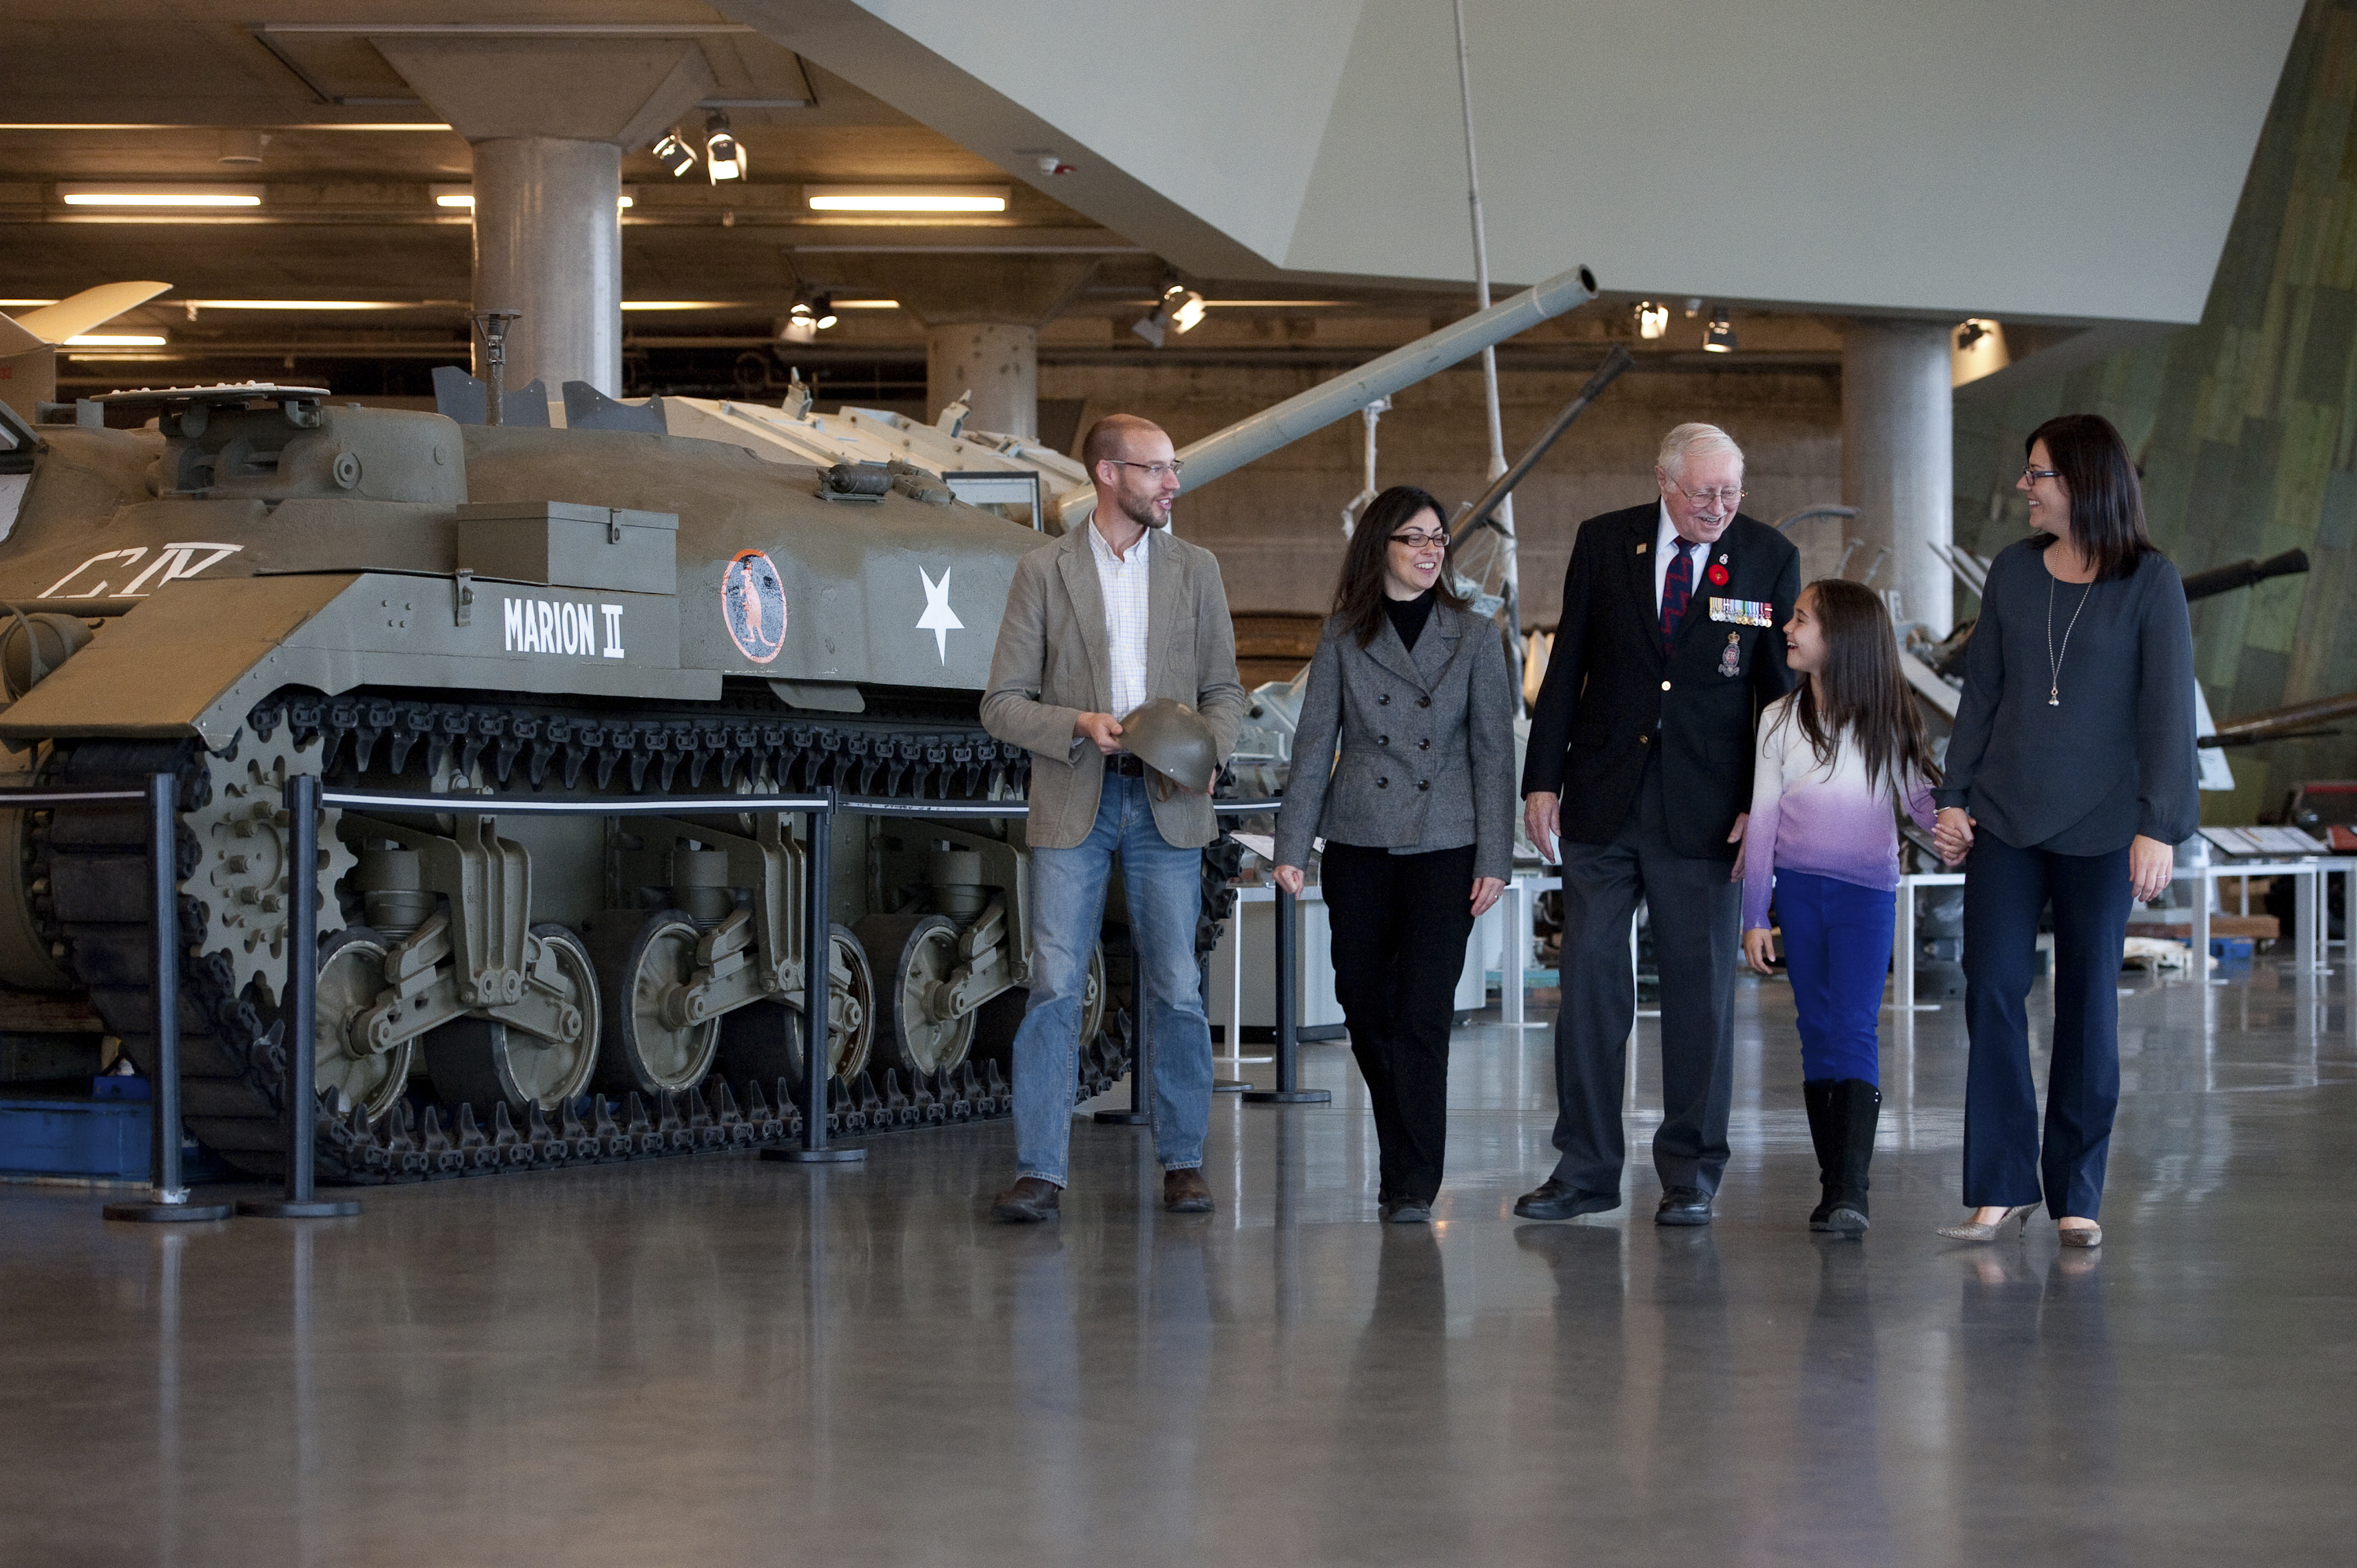 A veteran gives a family a tour of the LeBreton Gallery at the Canadian Ware Museum.